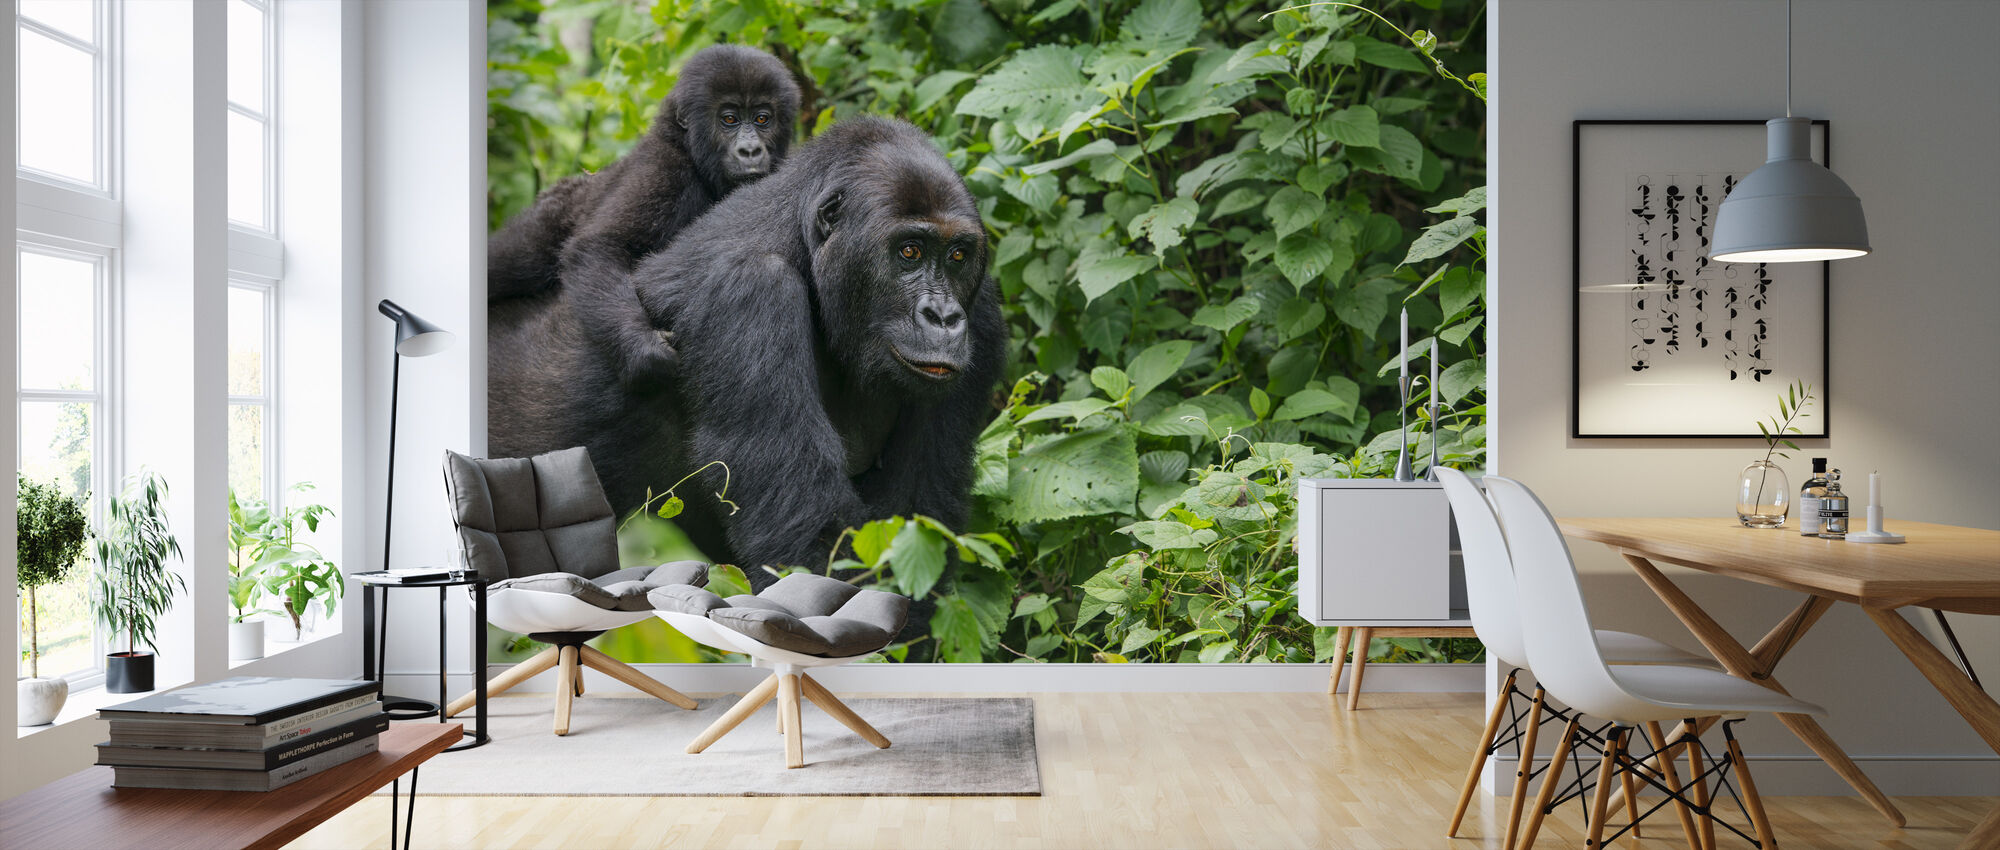 Gorilla Baby and Mother - Wallpaper - Living Room